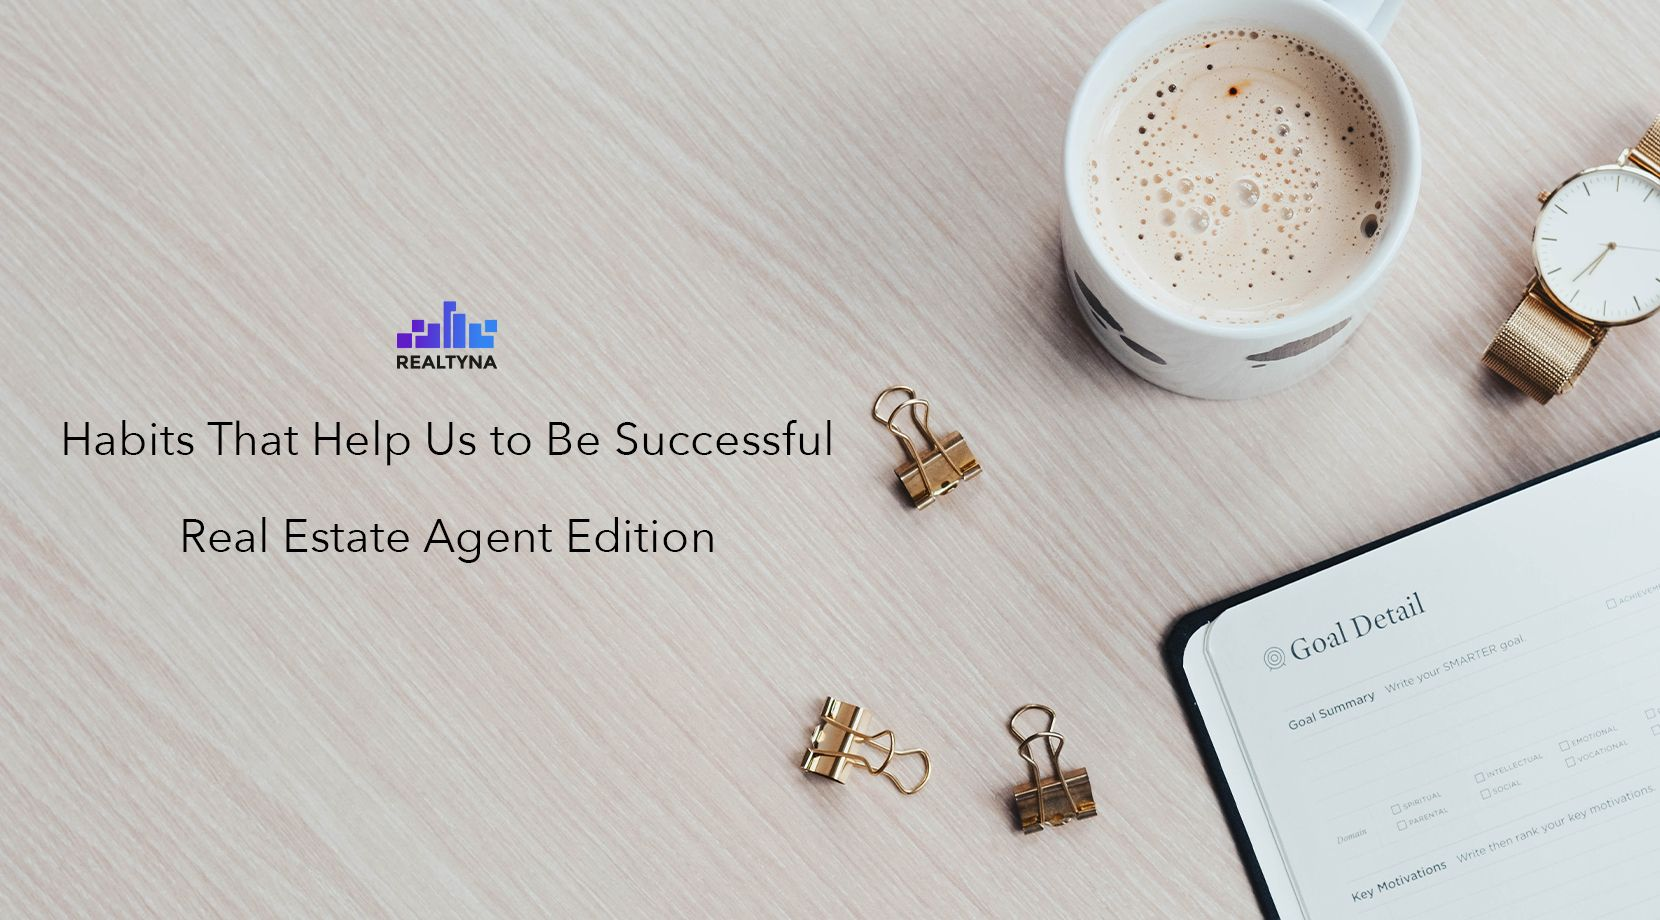 Habits for Successful Real Estate Agents